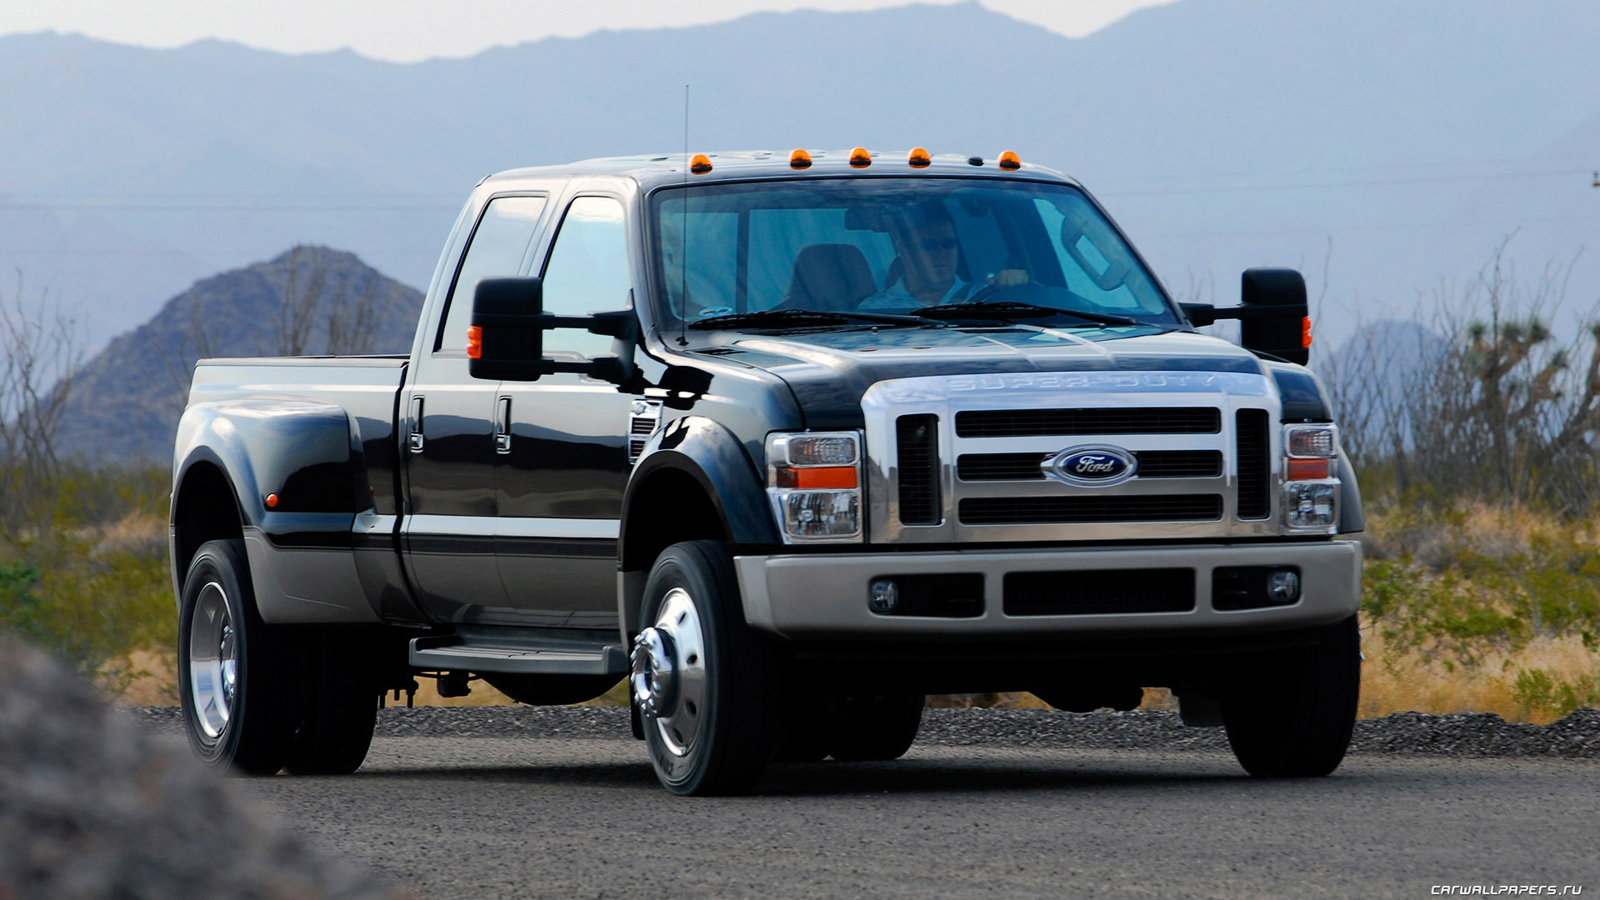 Ford F-450 Super Duty King Ranch #4